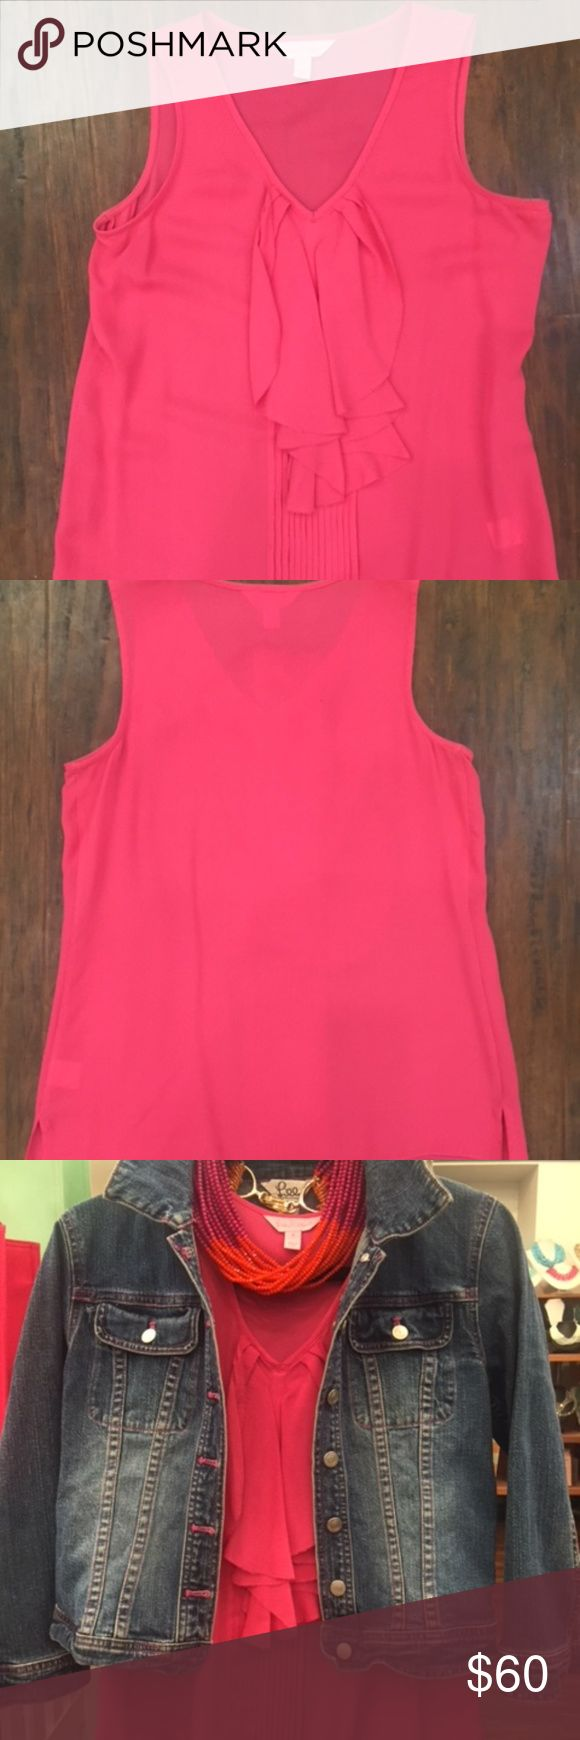 """Lilly Pulitzer, Hot Pink Sleeveless Blouse Hot Pink Blouse is Silk and has an ascot like ruffle on the front. Lightly worn. Straight hemline with small notched vents on the side.  Sleeveless blouse is 24"""" long from the top of the back neck to the hem (slightly longer in the front).  16"""" across the back under the arm holes.  Bra strap keepers under each shoulder. Lilly Pulitzer Tops Blouses"""